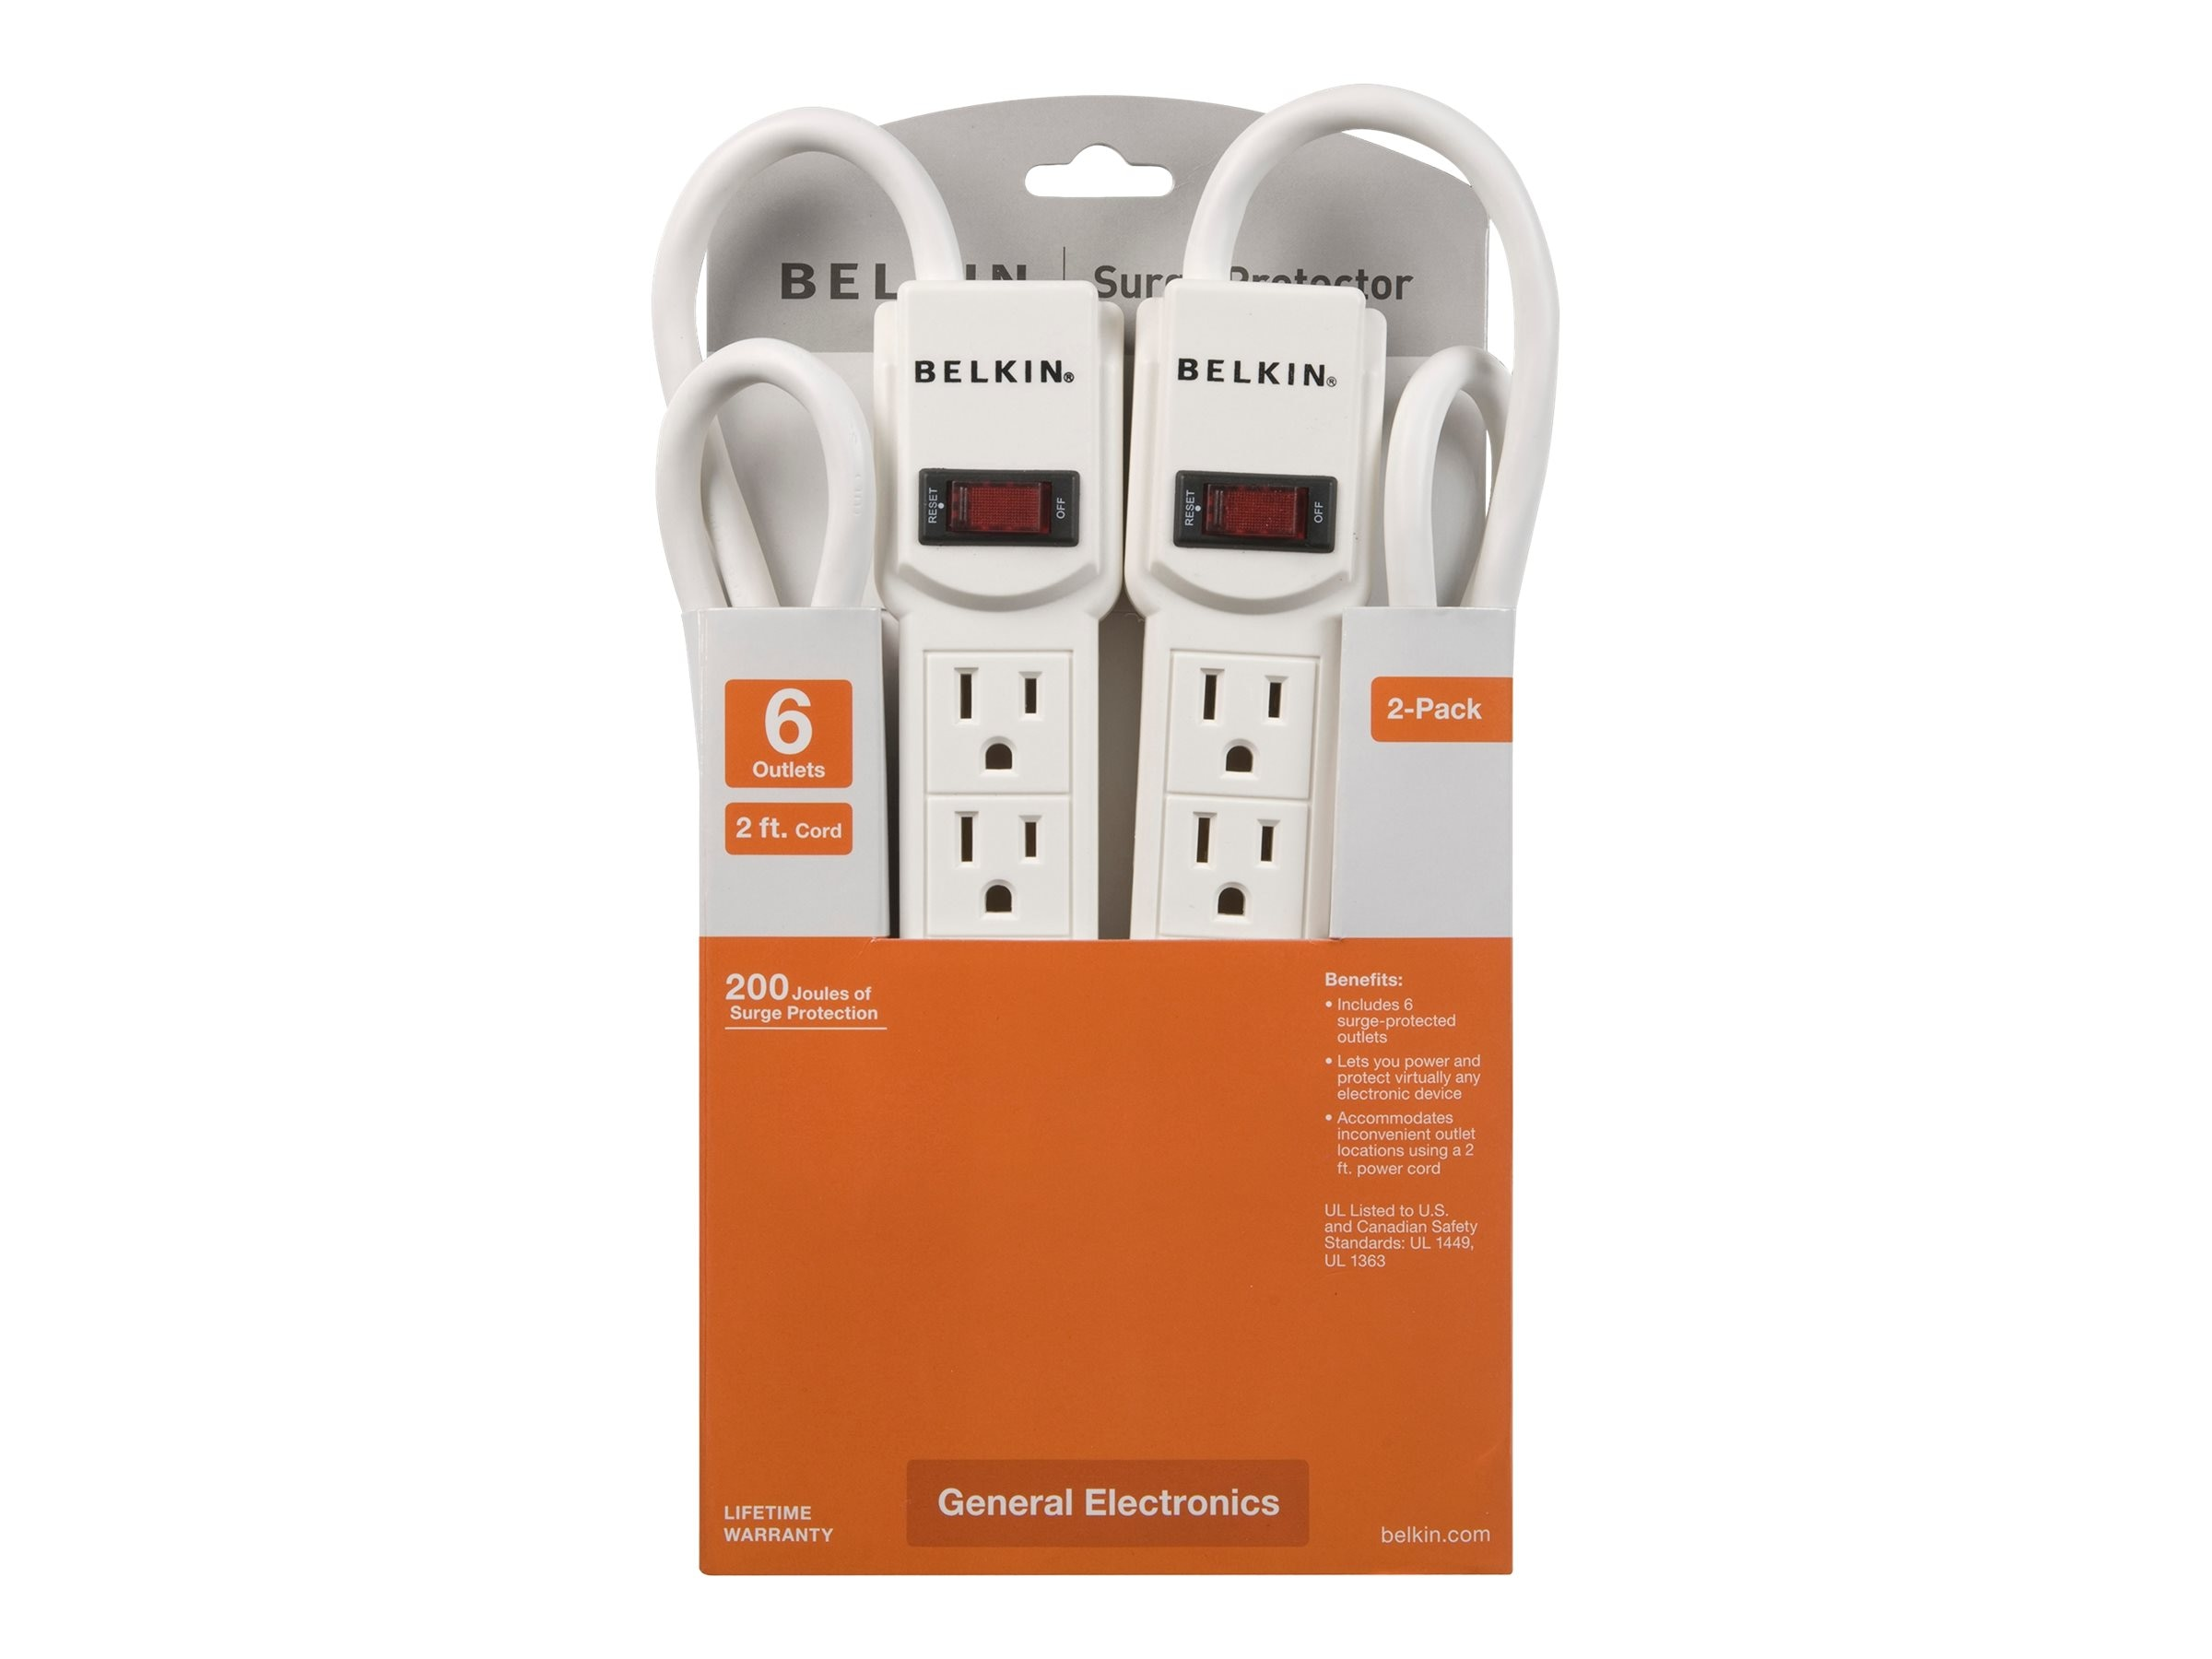 Belkin Surge Protector 6-Outlets 200 Joules 2ft Cord (2-pack)